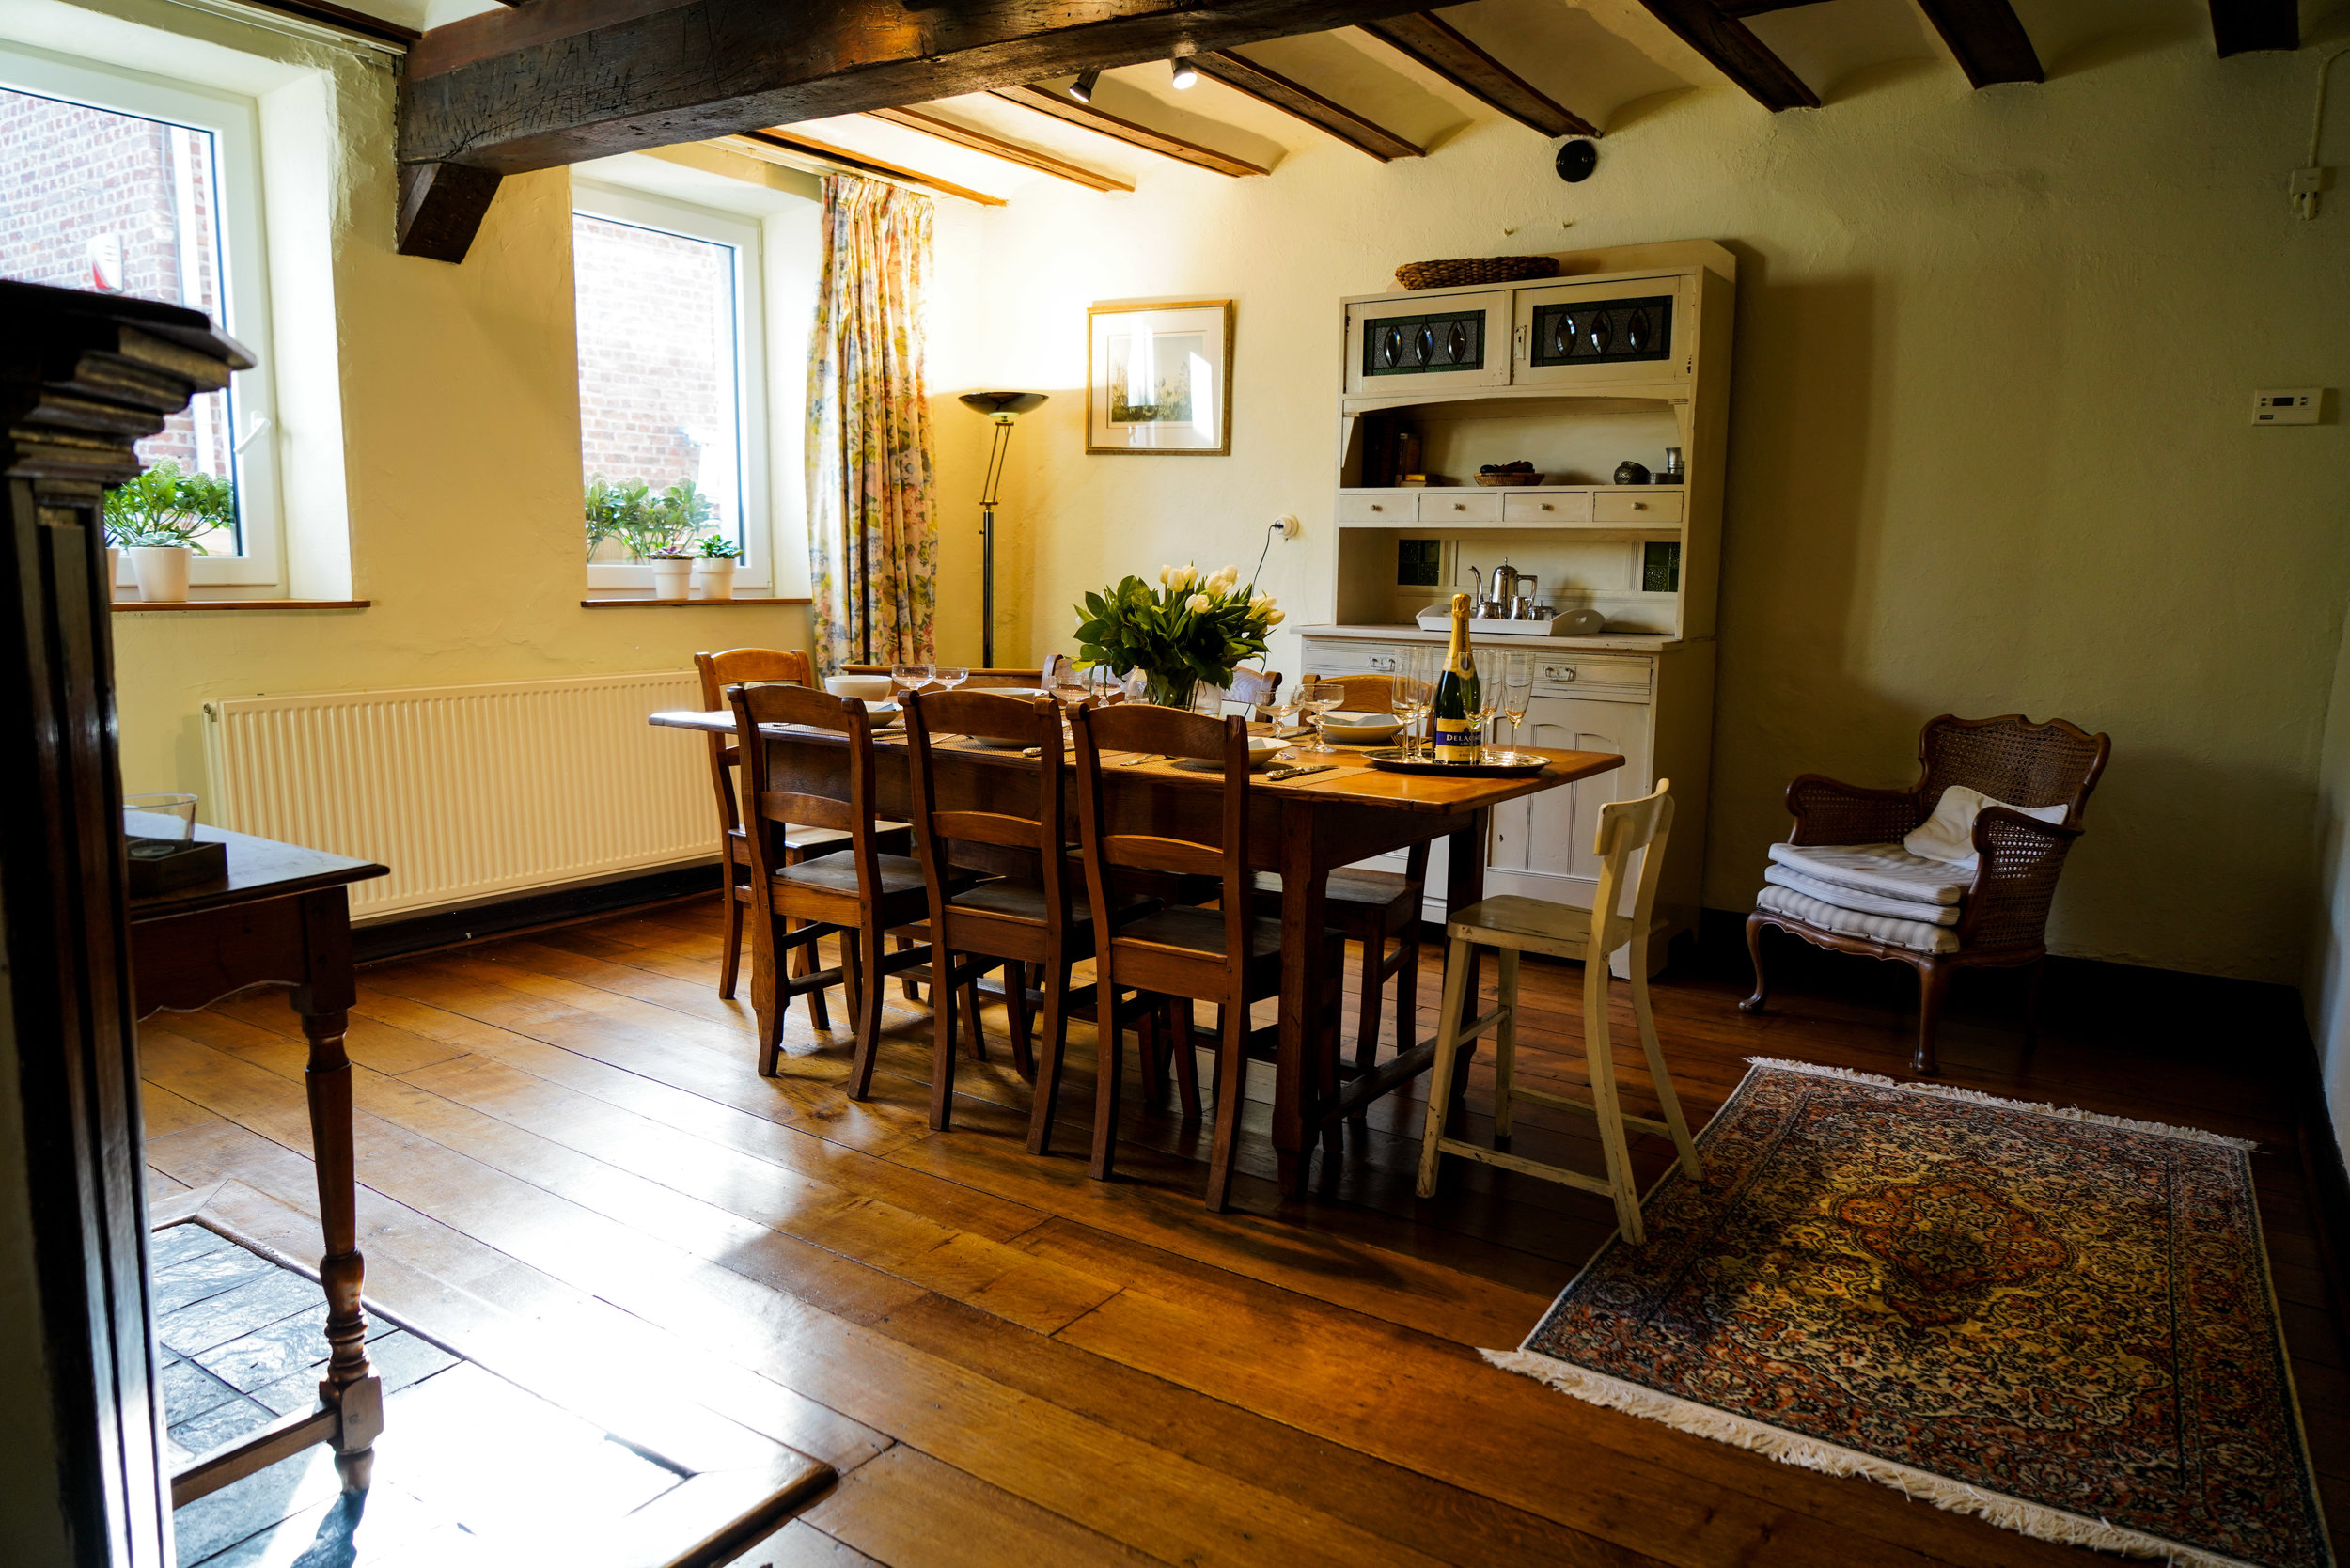 Dining Room - To share a meal with friends or family.